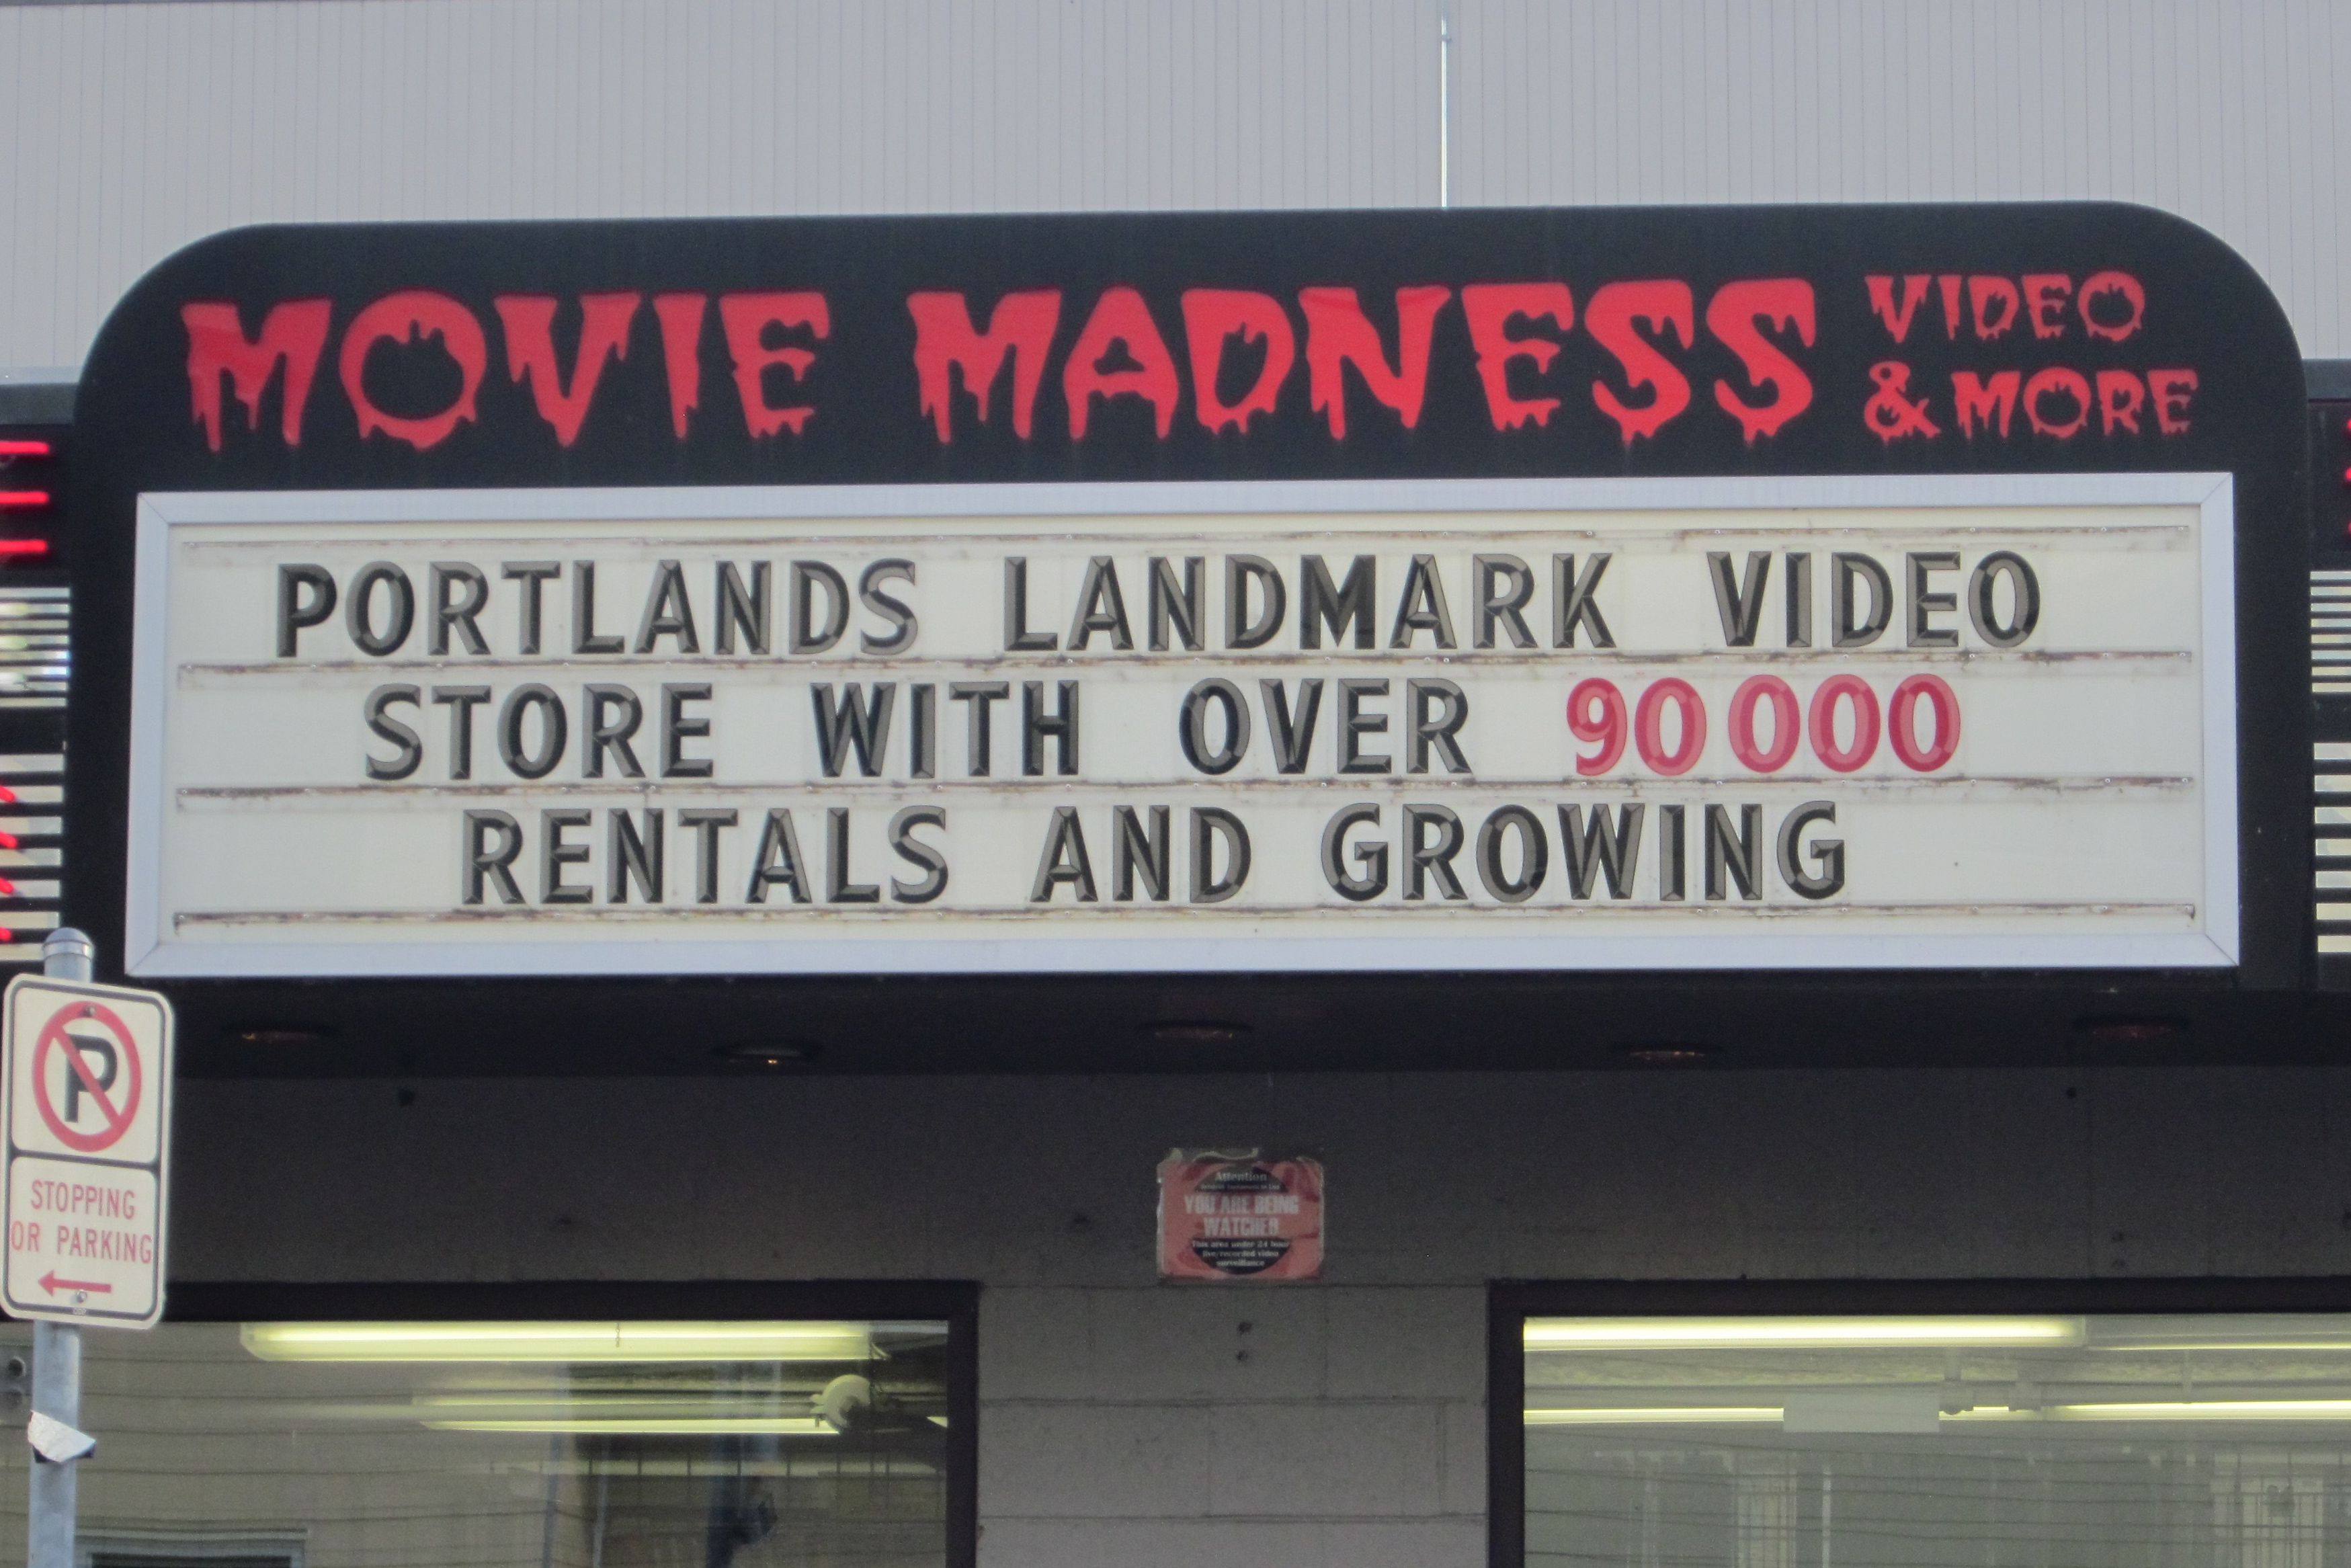 9 30 17 moviemadness sign1 ms kuearg